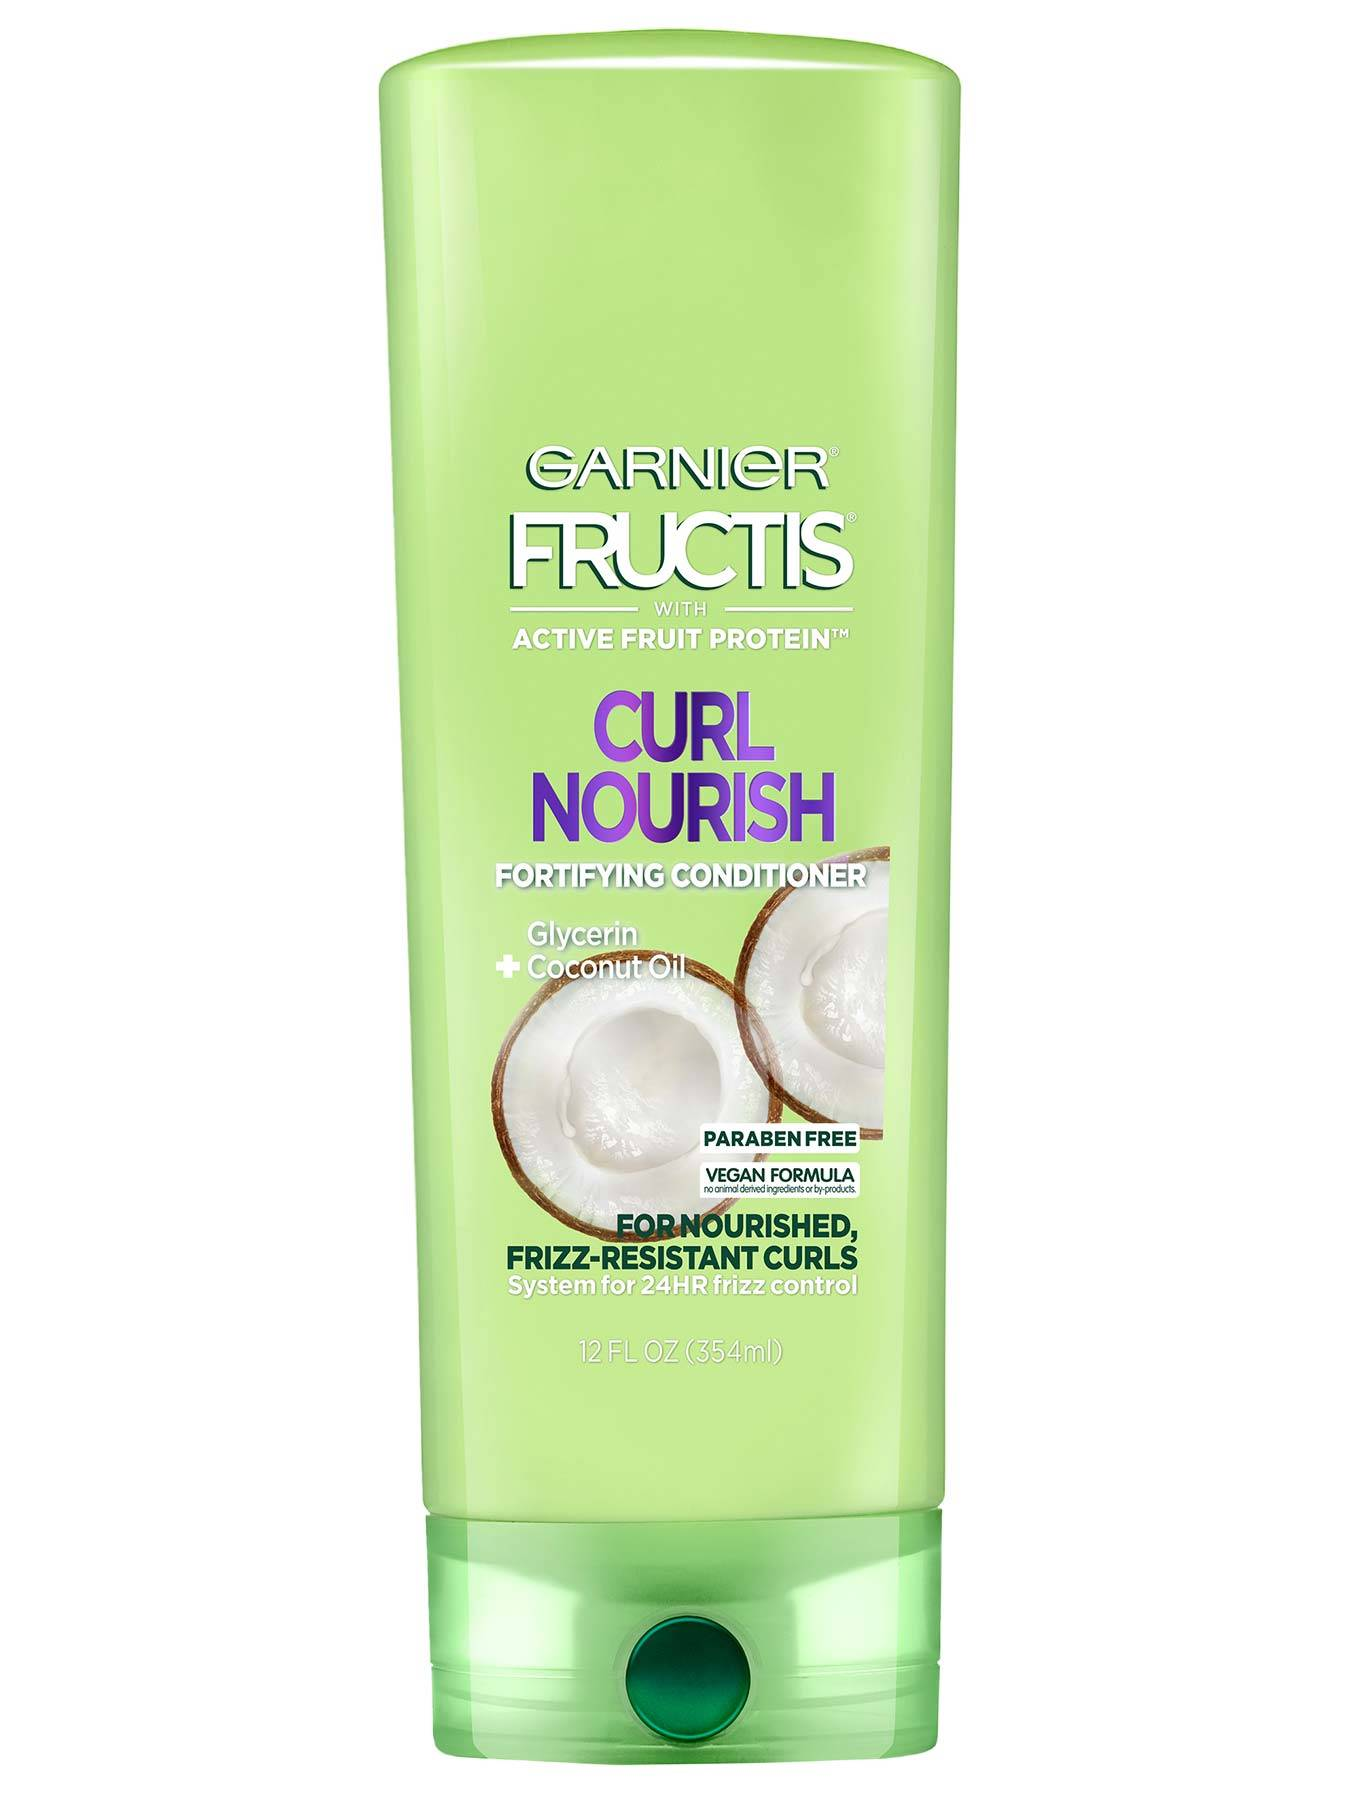 Front view of Curl Nourish Conditioner for Resistant Curls.